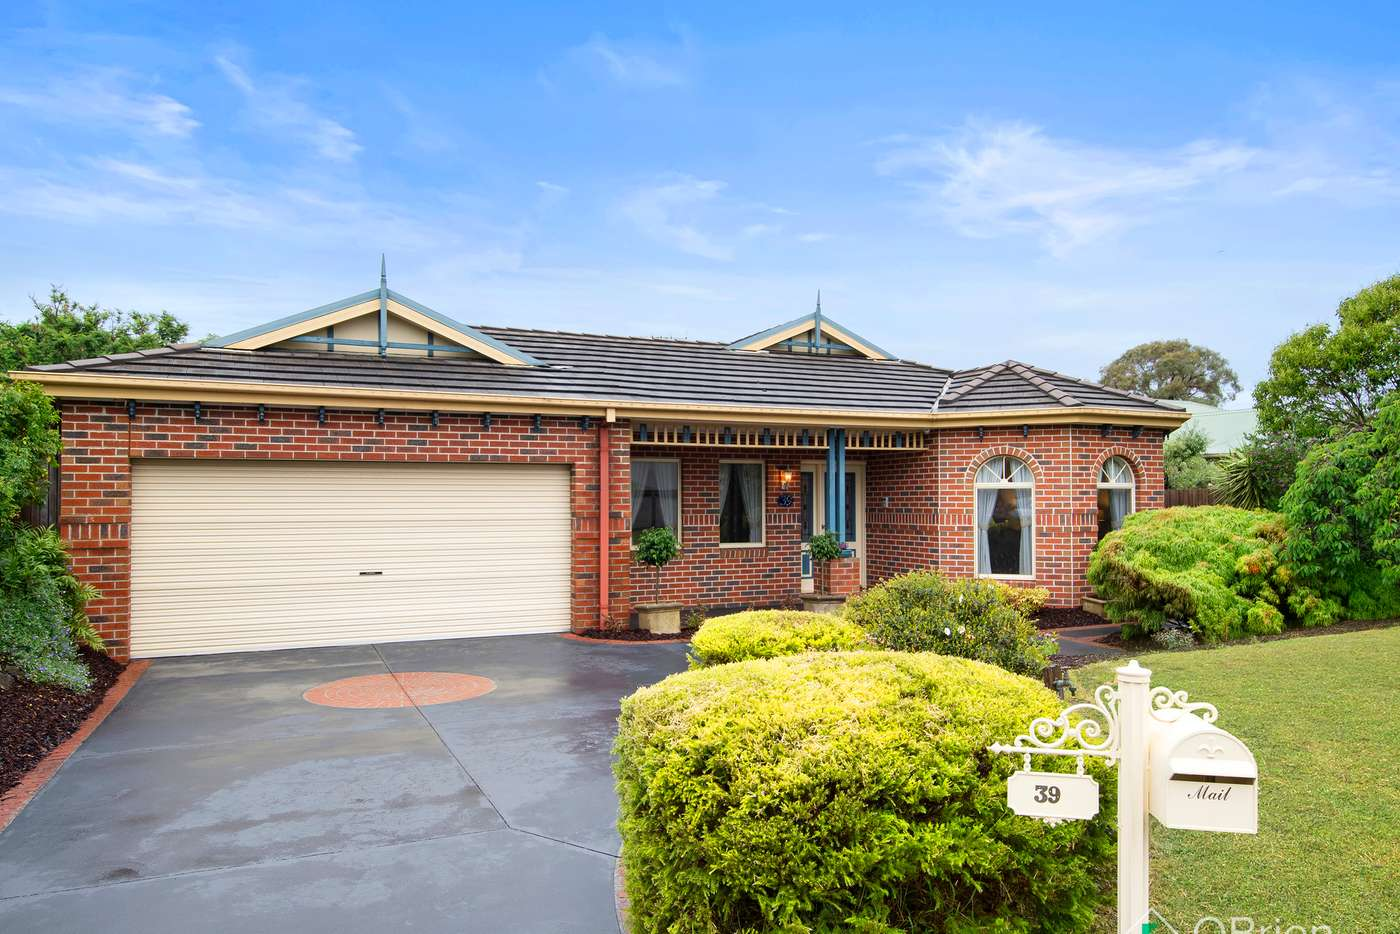 Main view of Homely house listing, 39 Manorwoods Drive, Frankston VIC 3199